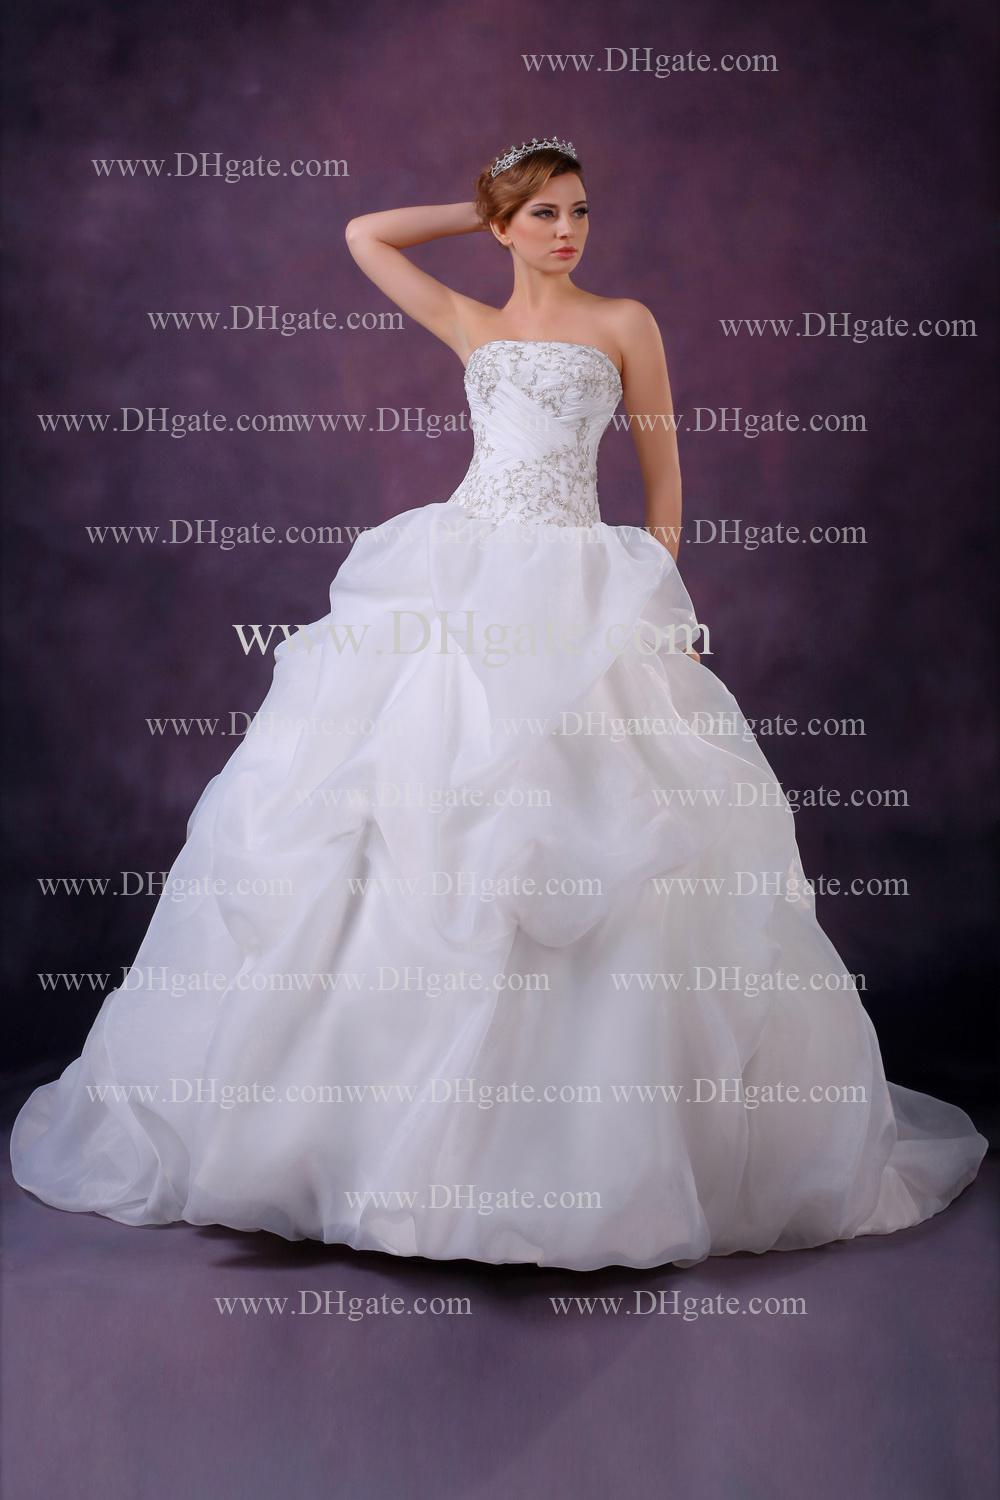 2014 New Amazing Sexy Sweetheart Bridal Gown With Applique Beads Ruffles Ball Gown Wedding Dress DHgate0917